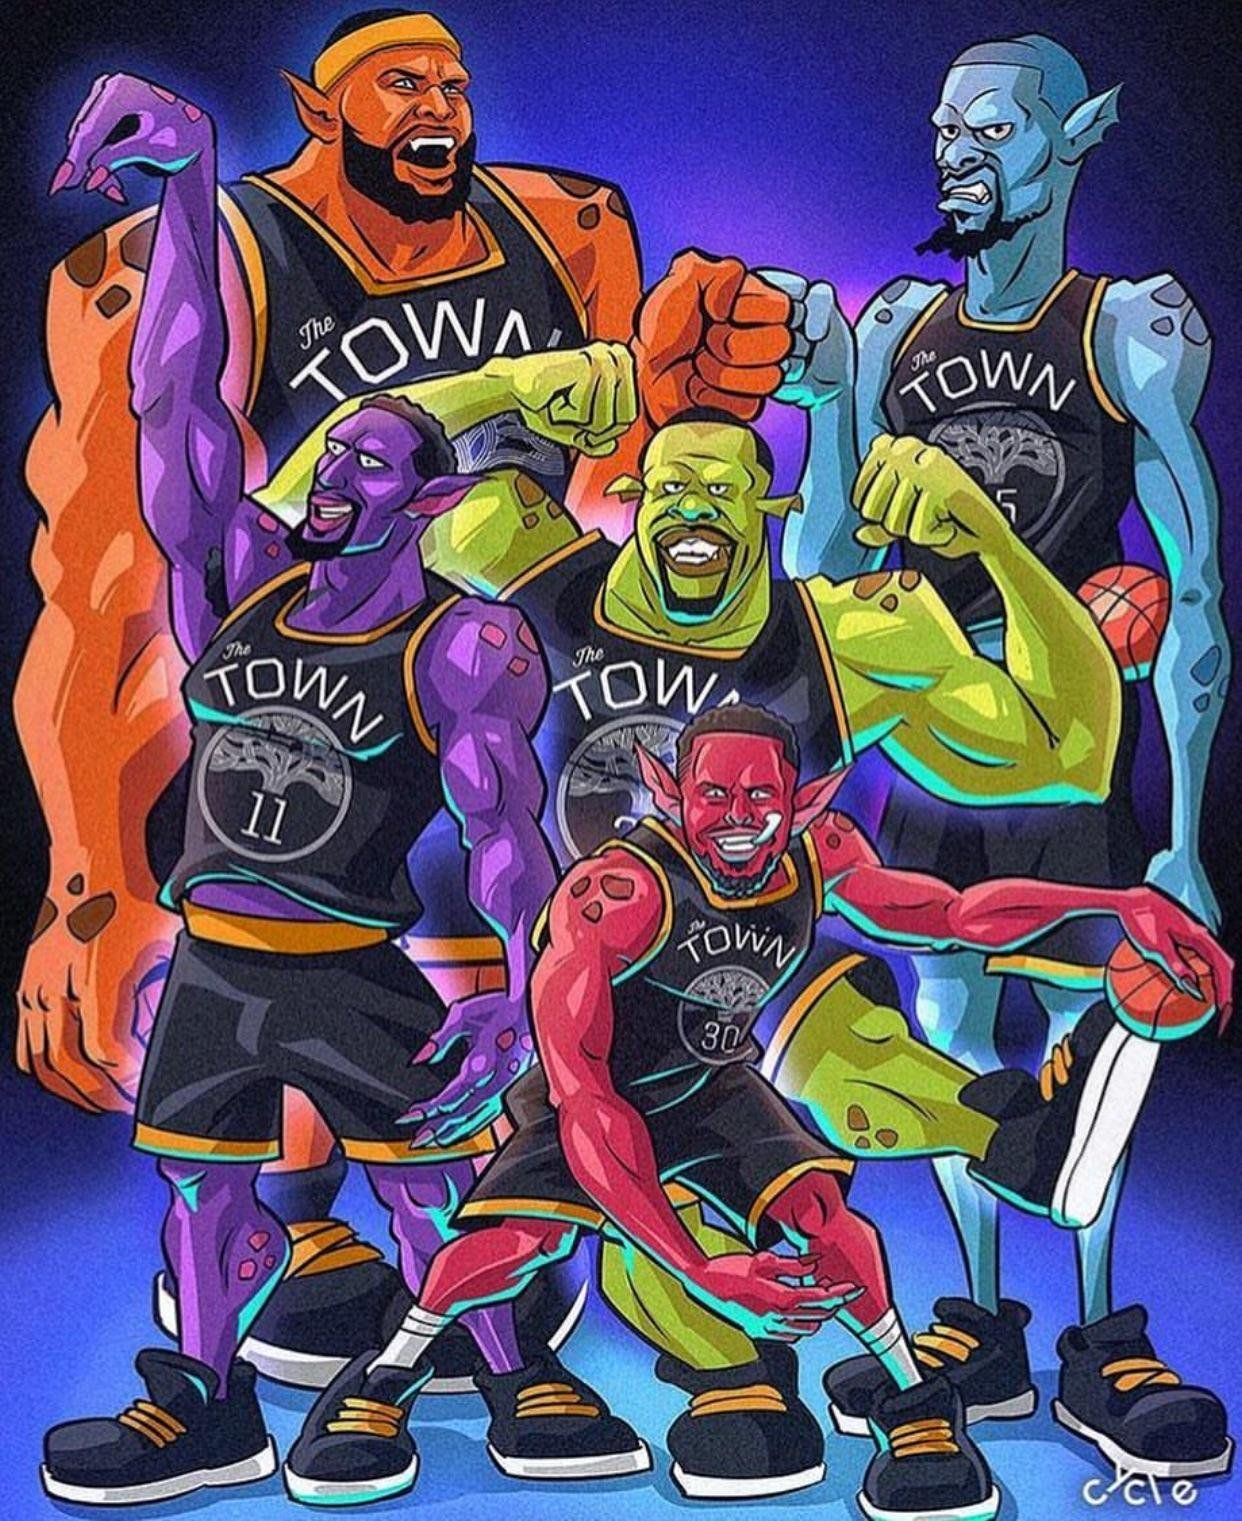 b0e2b0661d9 I haven t seen this Golden State Monstars picture here yet.   warriors